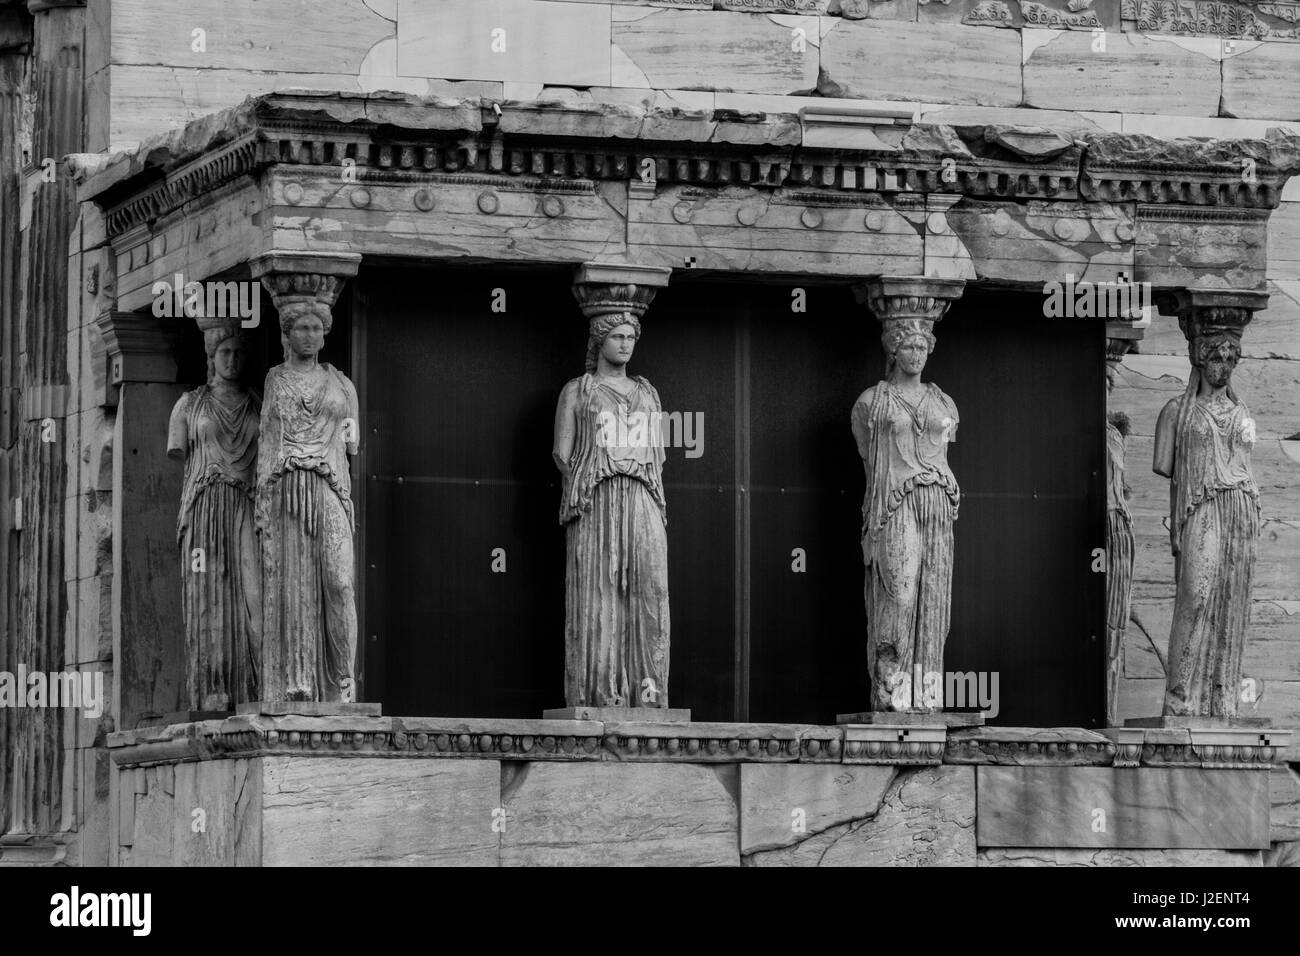 Athens, Greece. Six Caryatid Statues at the Acropolis - Stock Image